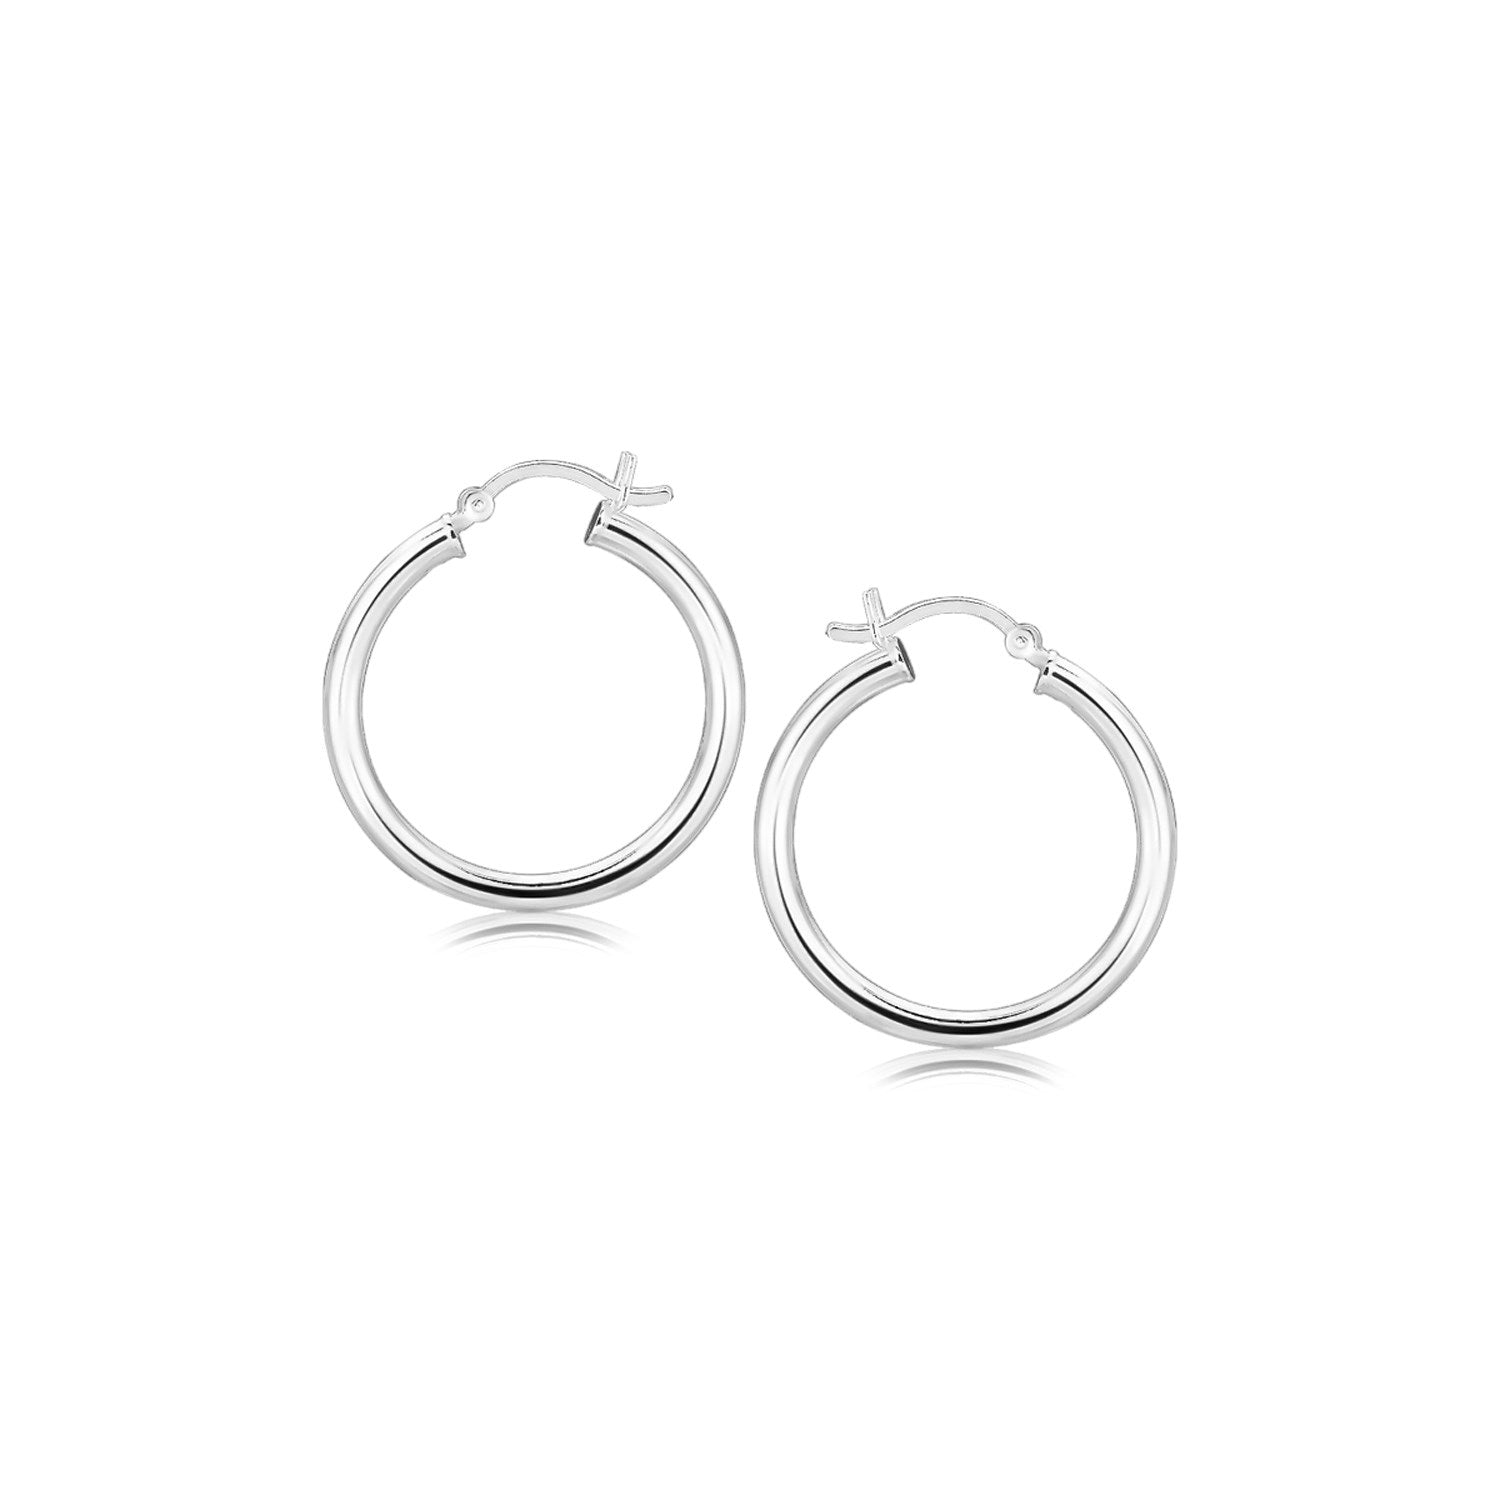 Unique Modern Paris Style Sterling Silver Rhodium Plated Polished Look Hoop Earrings (25mm)